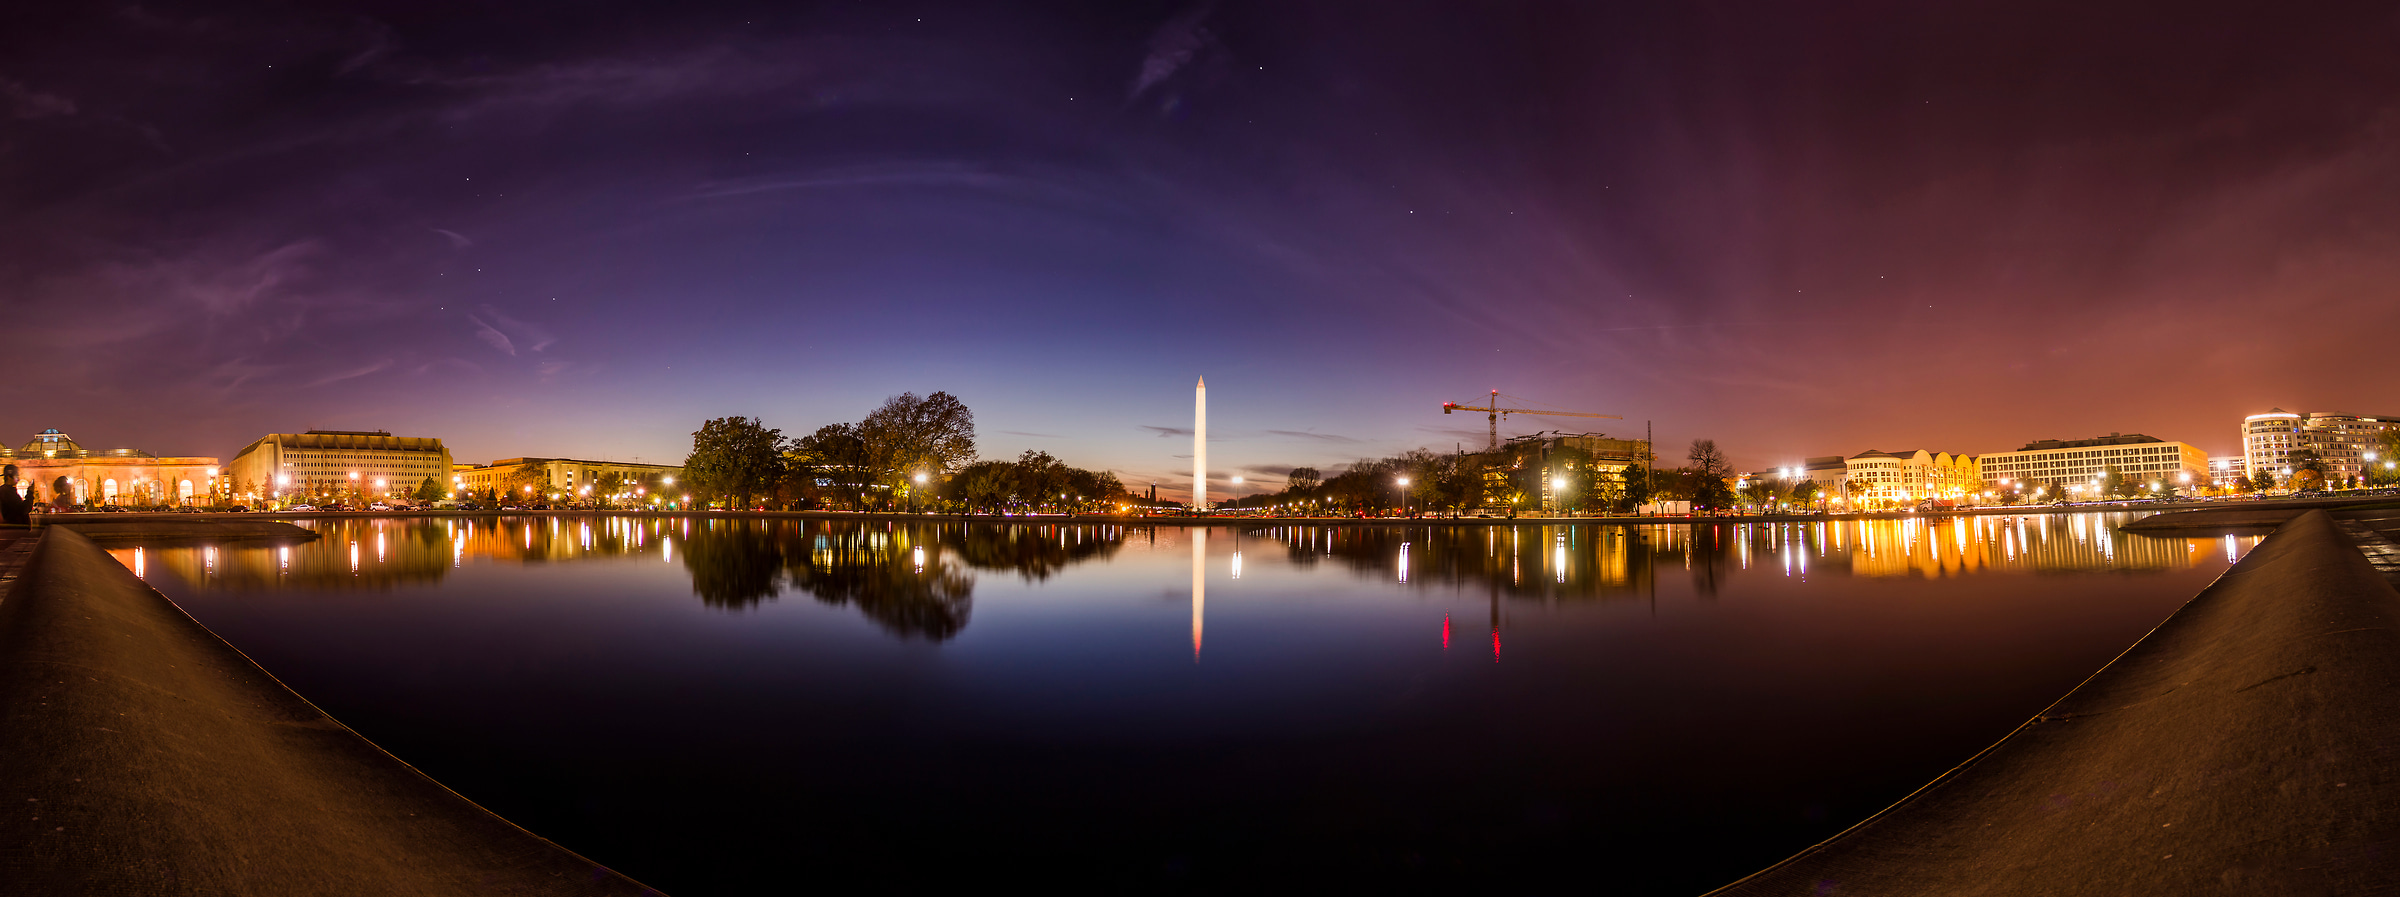 73 megapixels! A very high resolution VAST photo of the National Mall and the Washington Monument reflected in the Reflecting Pools at dusk; created by Dan Piech